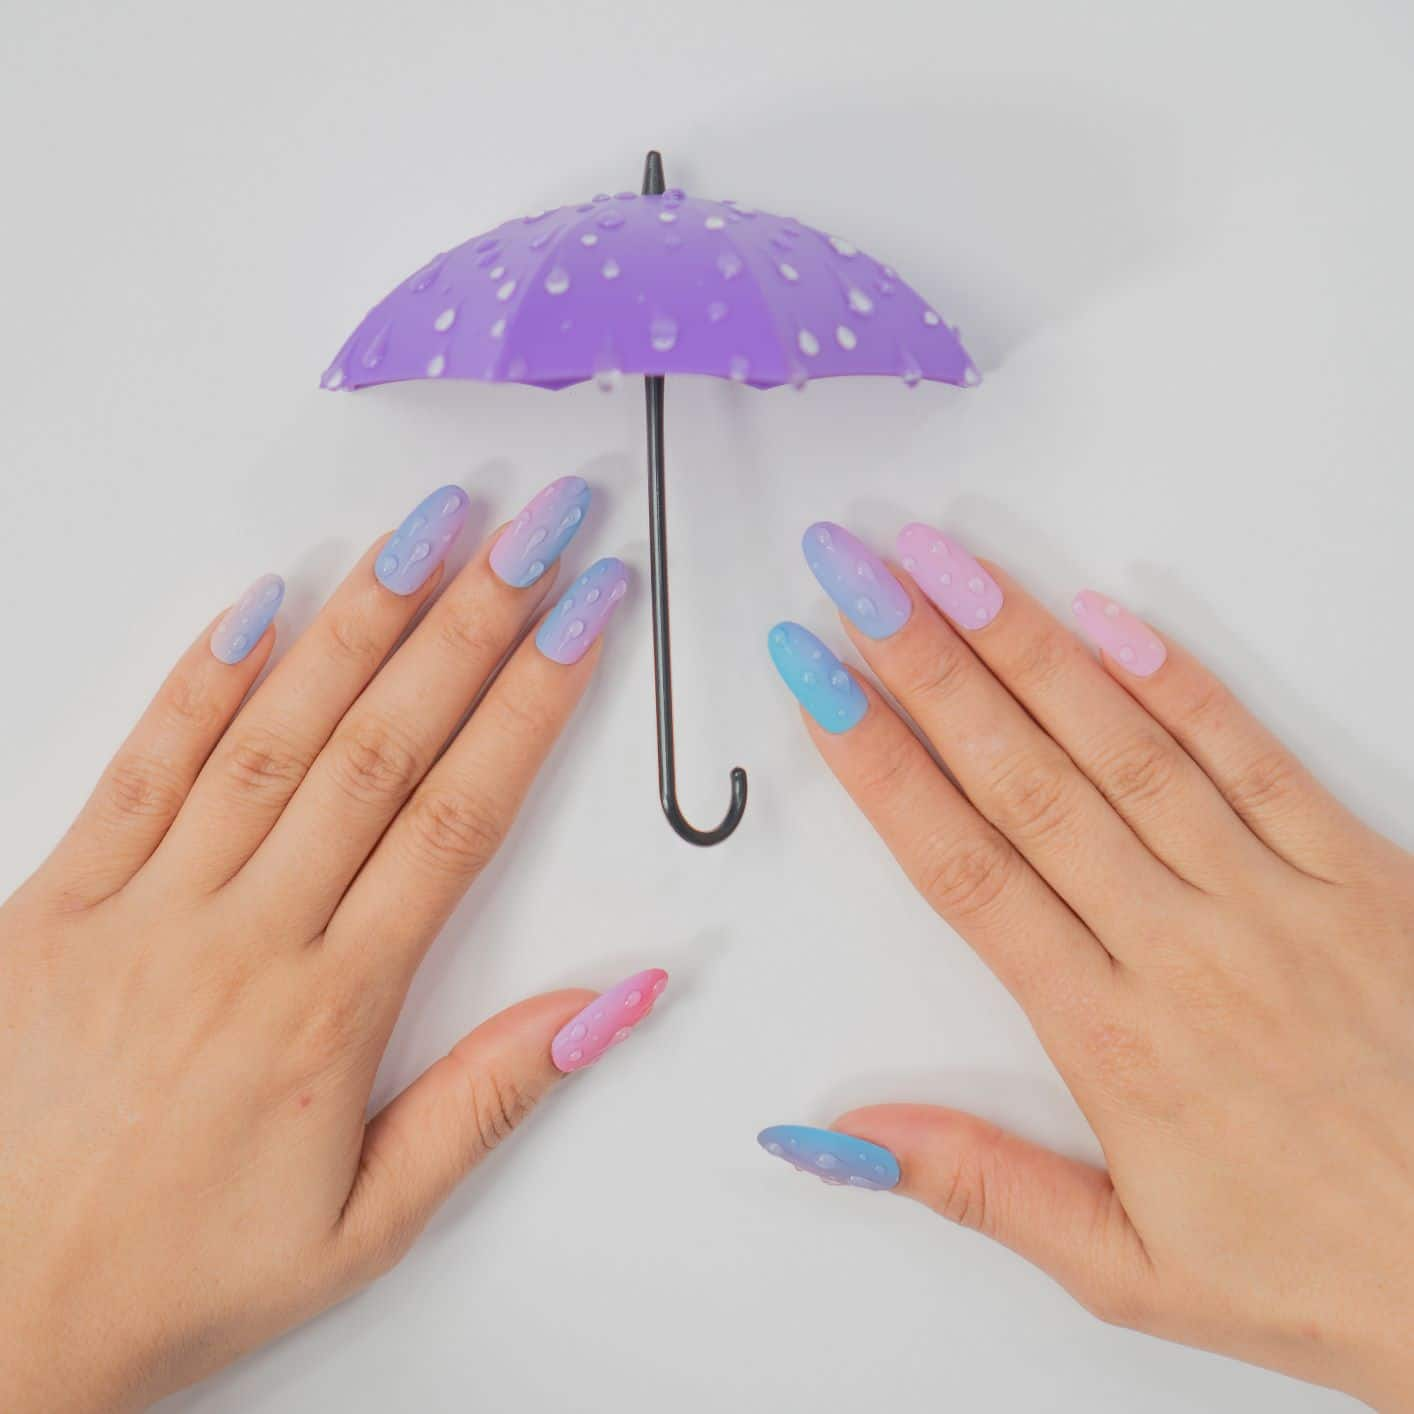 pastel colored nails with raindrop effect decorations